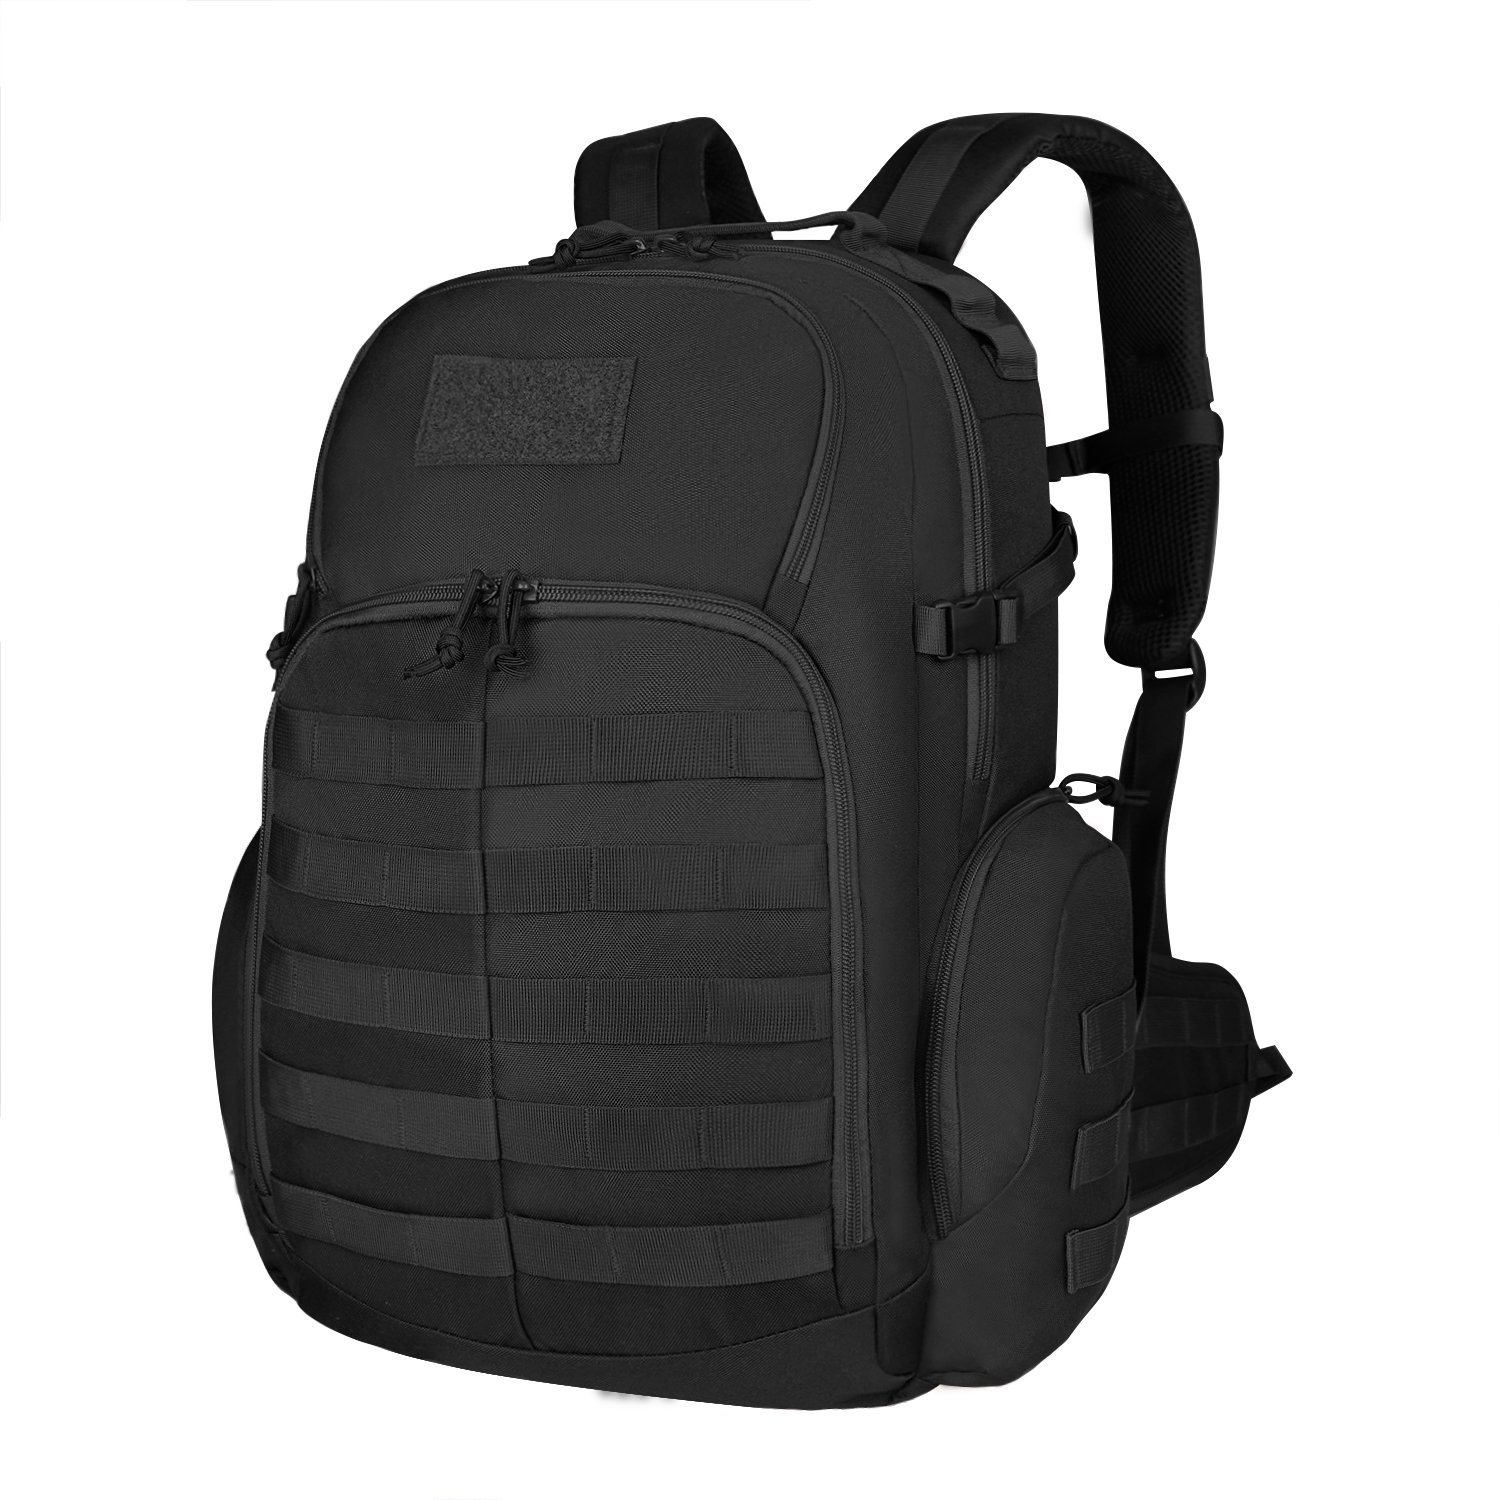 Mardingtop 35L Tactical Backpacks Molle Hiking daypacks for Camping Hiking Military Traveling (M6232-Black)